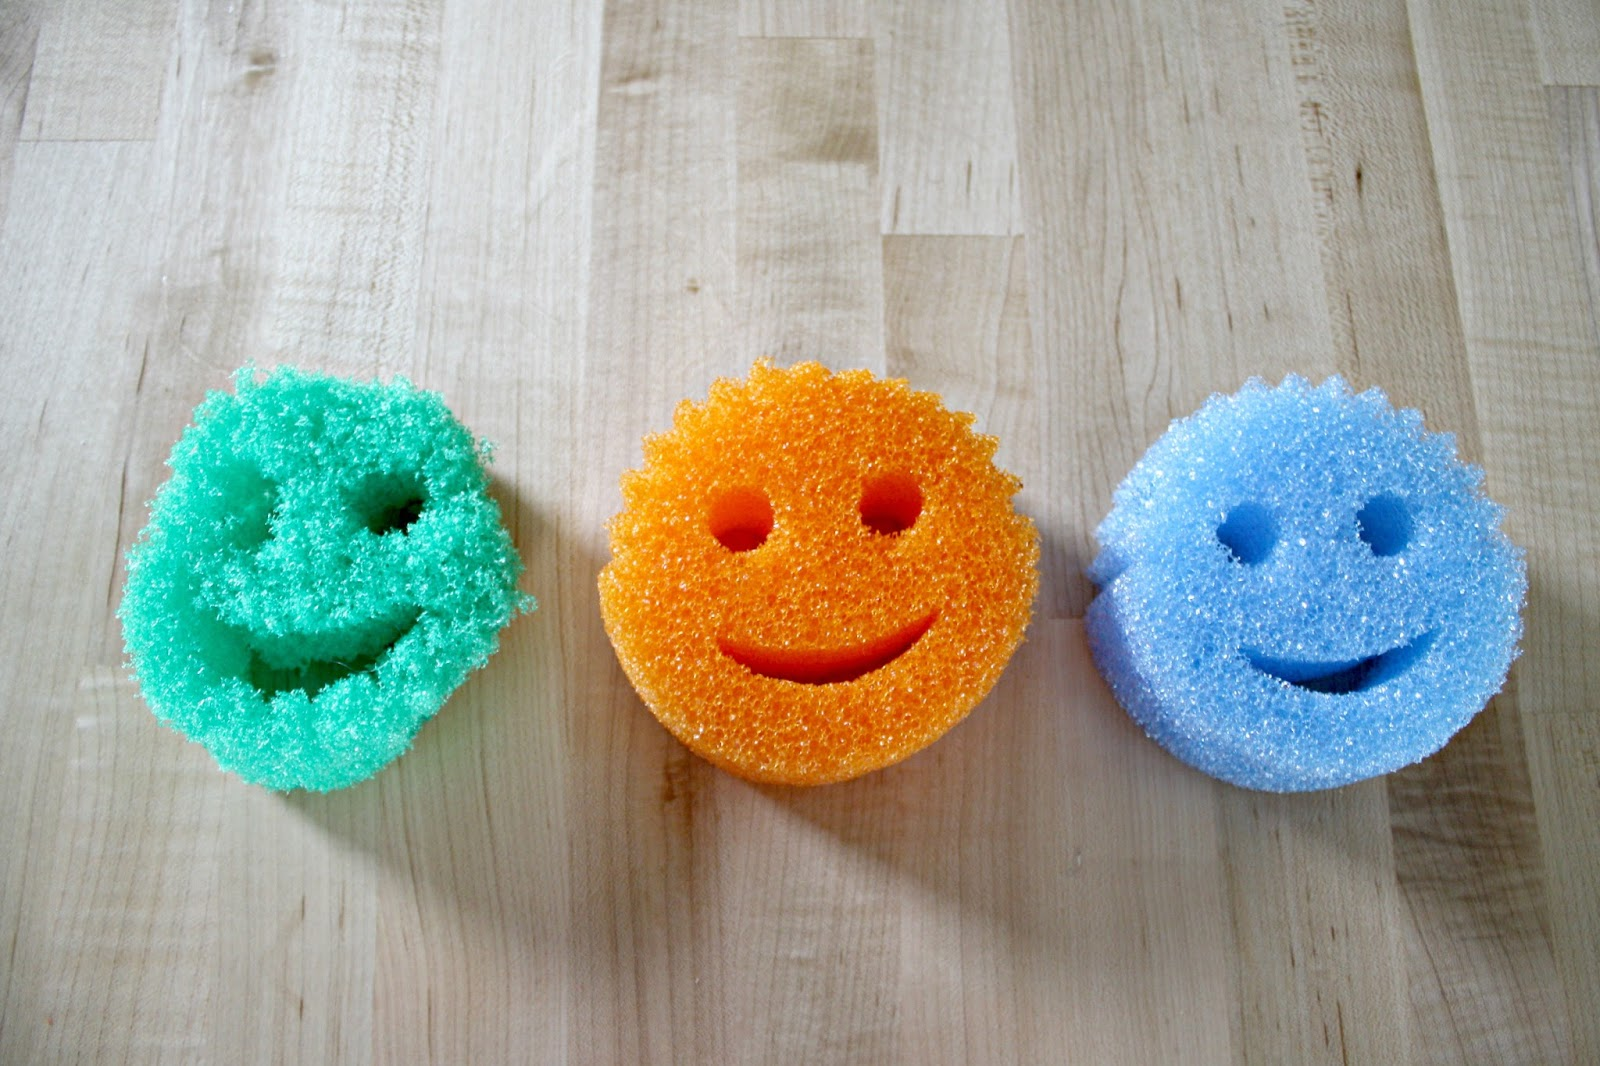 Scrub daddy, the BEST sponges